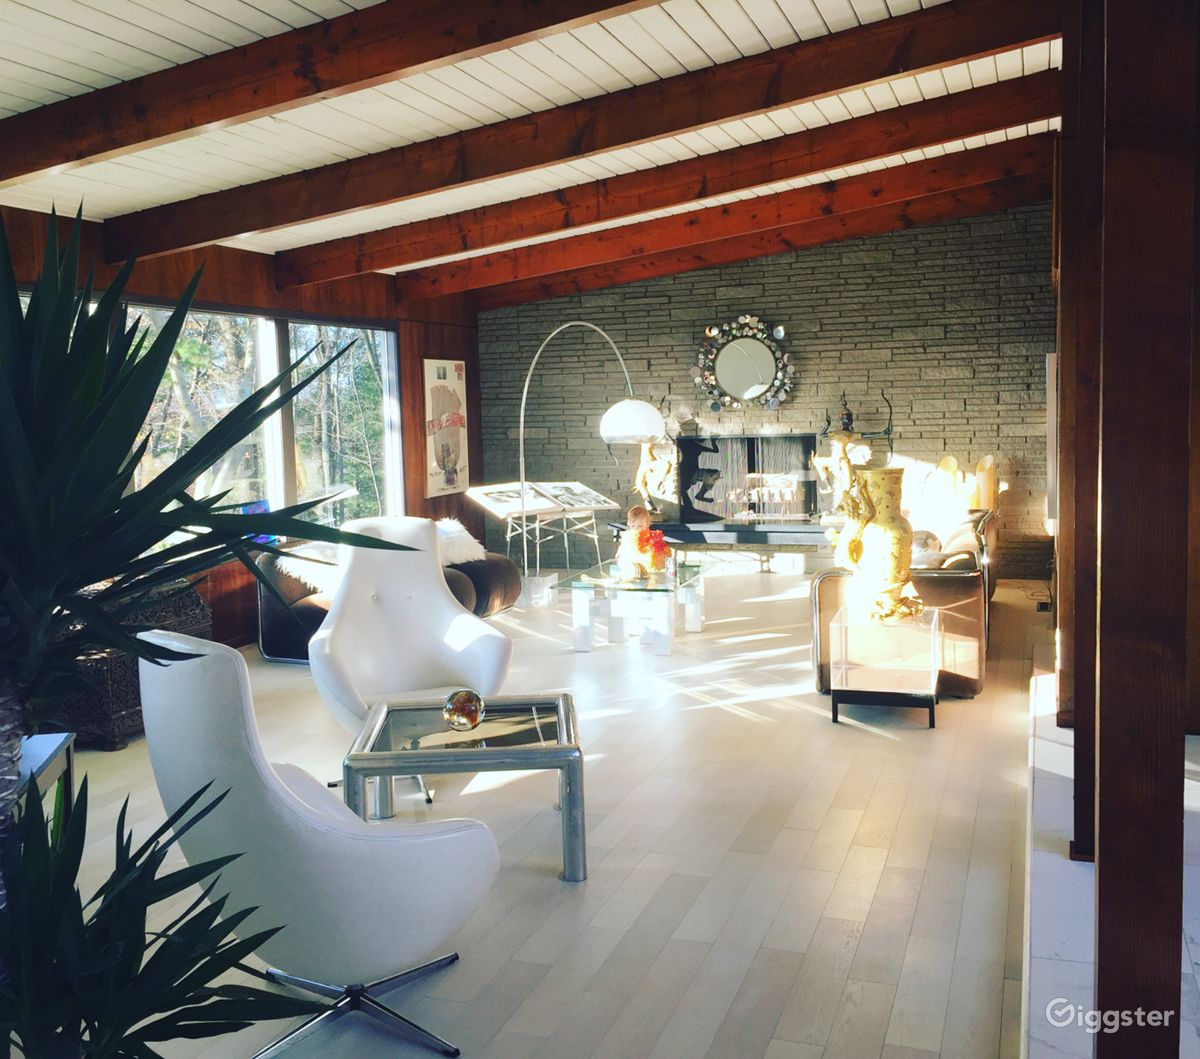 Rent the houseresidential 60s modern designer home with hudson valley views for film